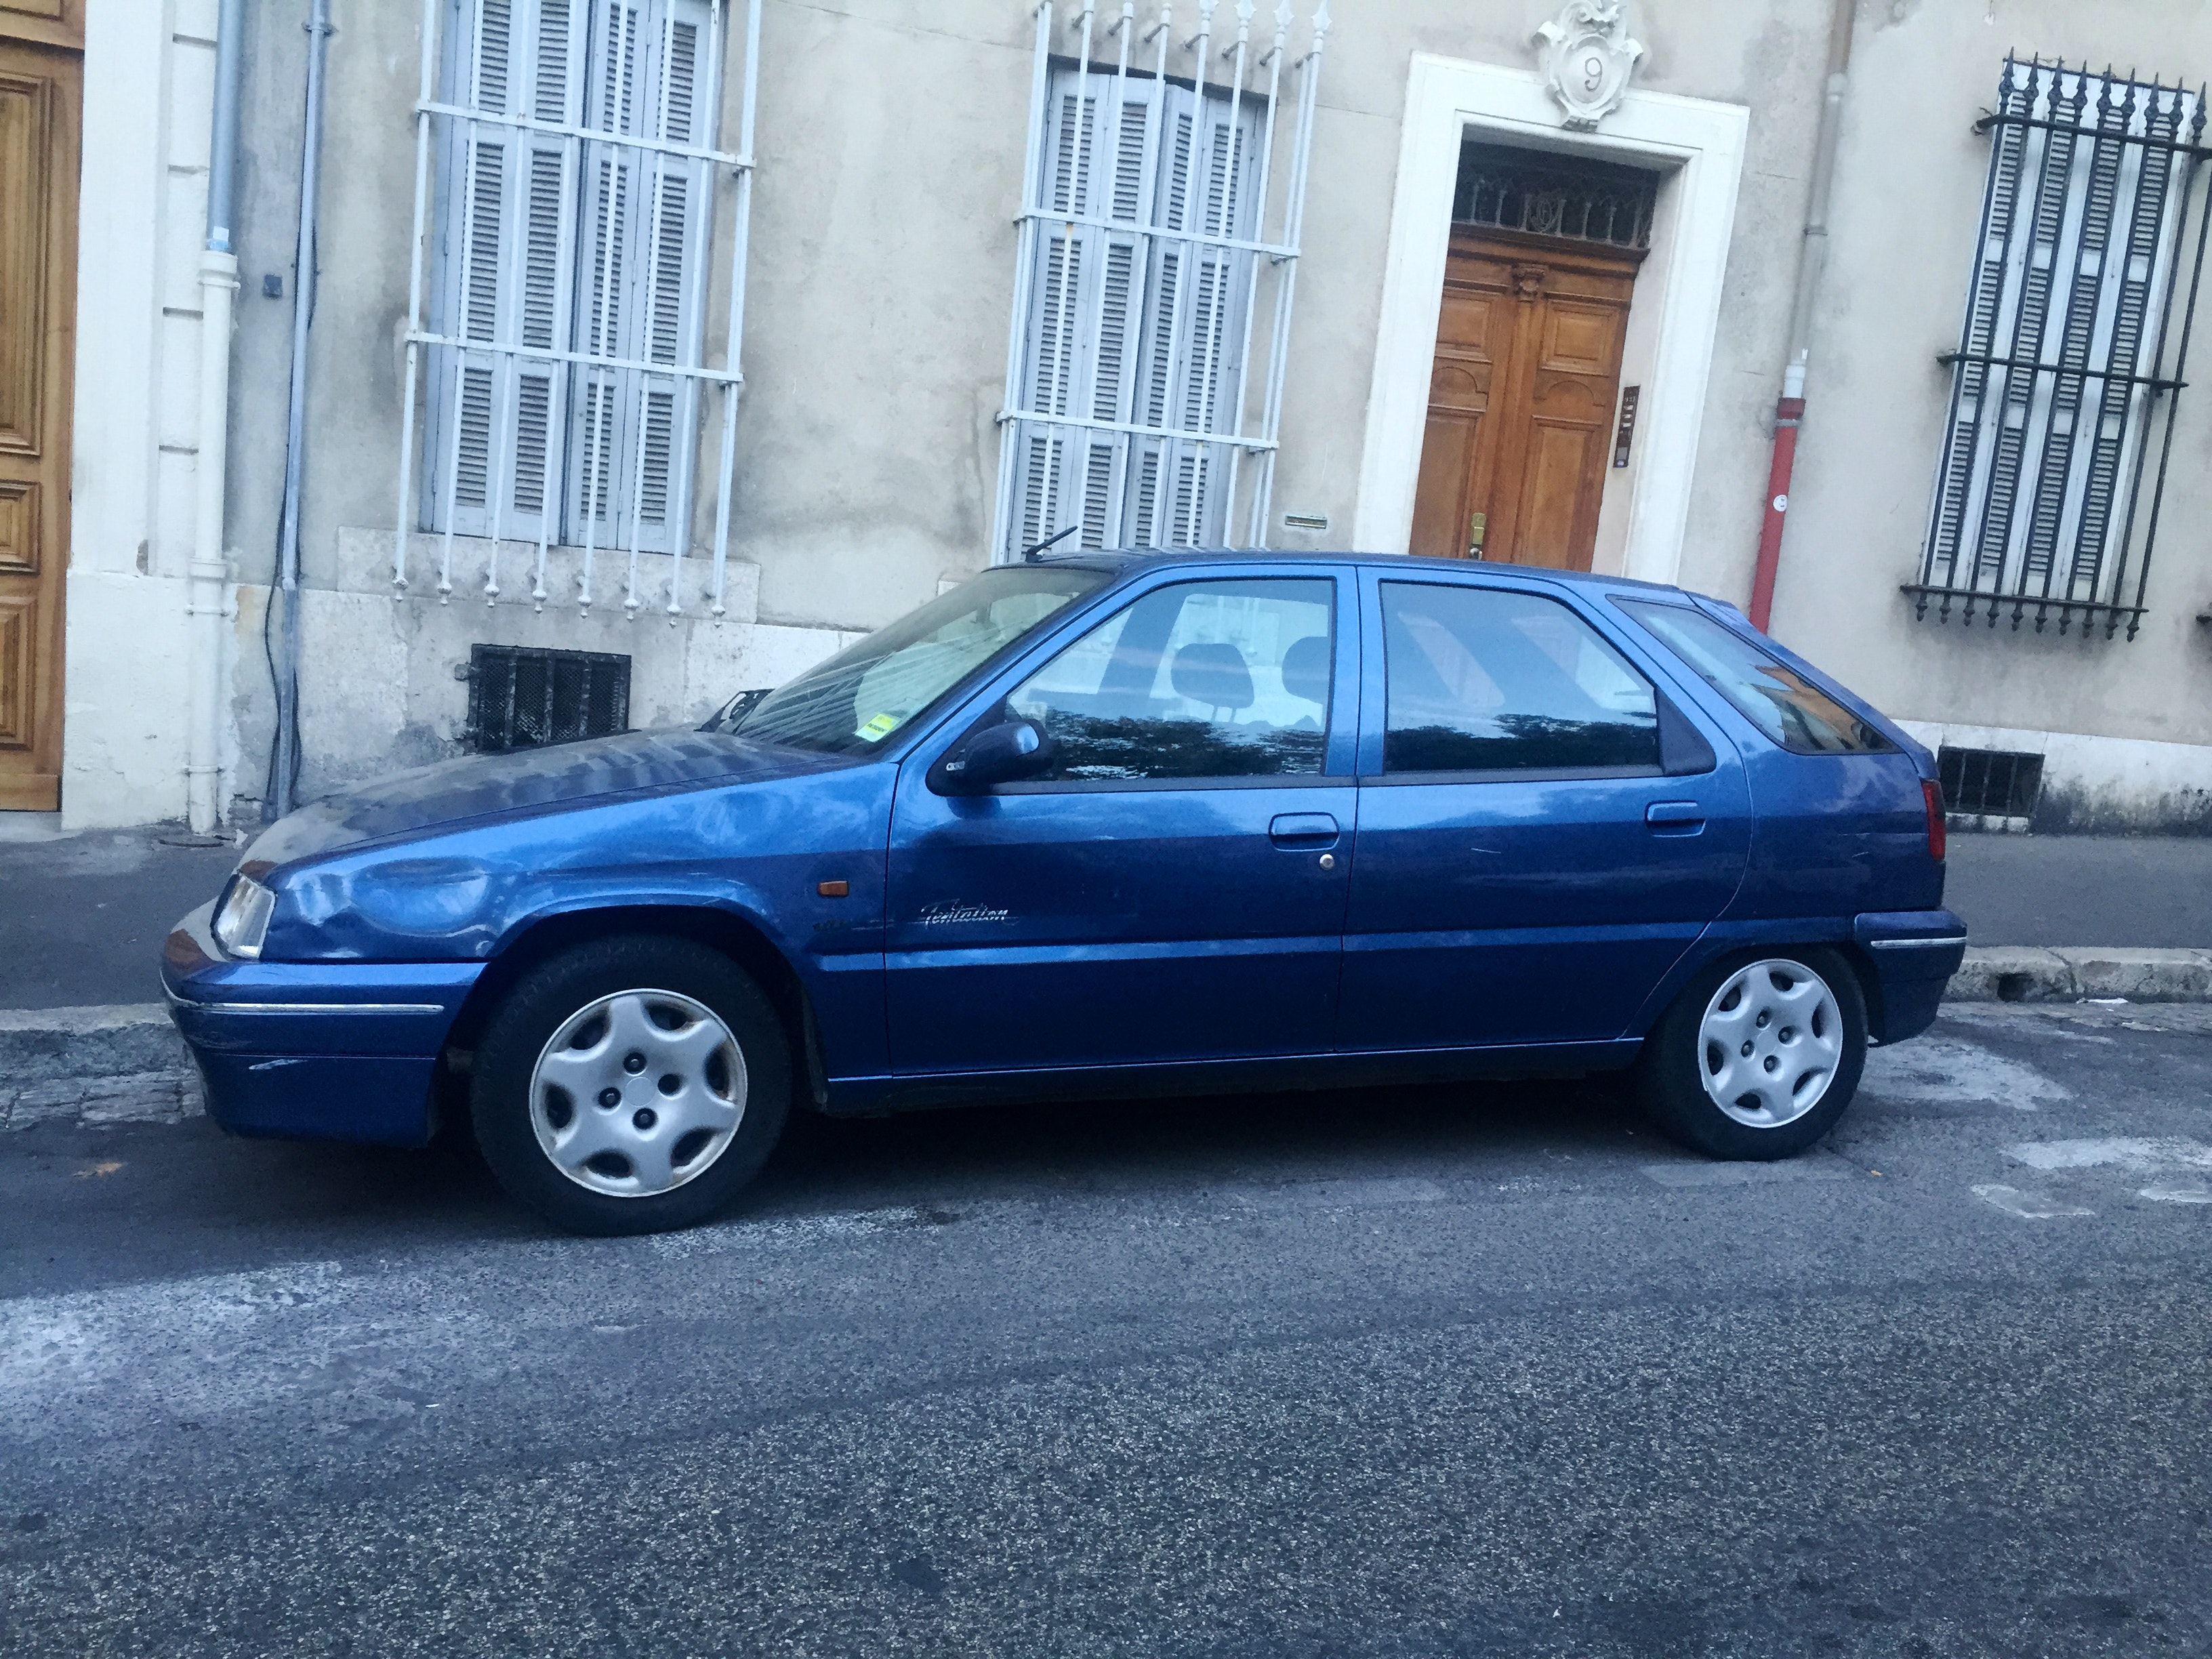 CITROEN ZX TENTATION 1.4i, 1997, Essence